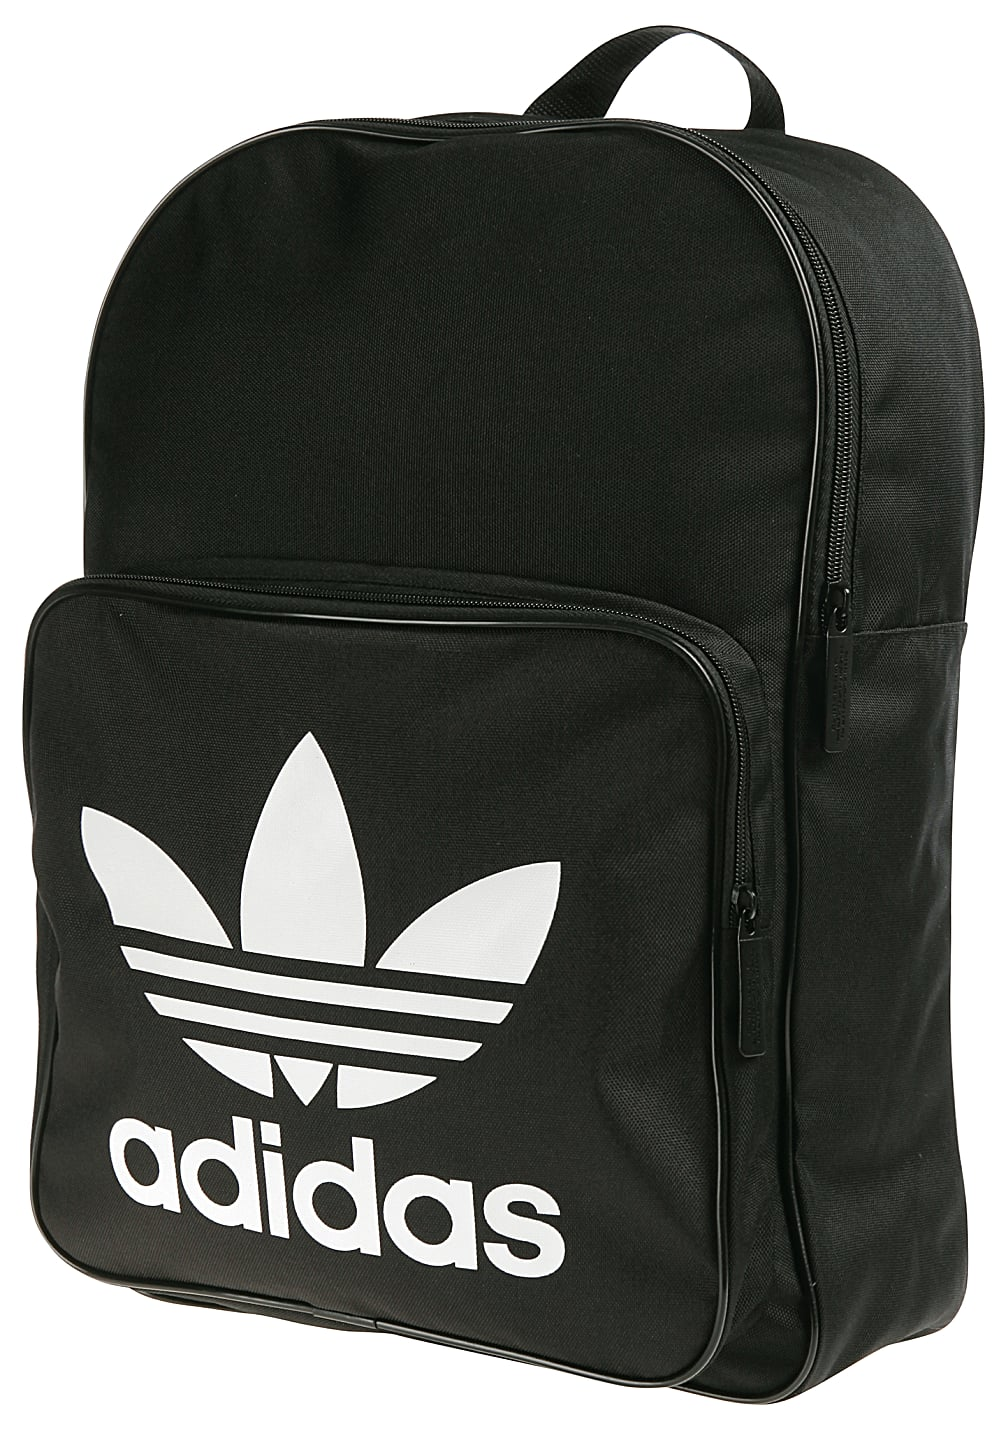 72500d41d5 ADIDAS ORIGINALS Classic Trefoil - Backpack - Black - Planet Sports